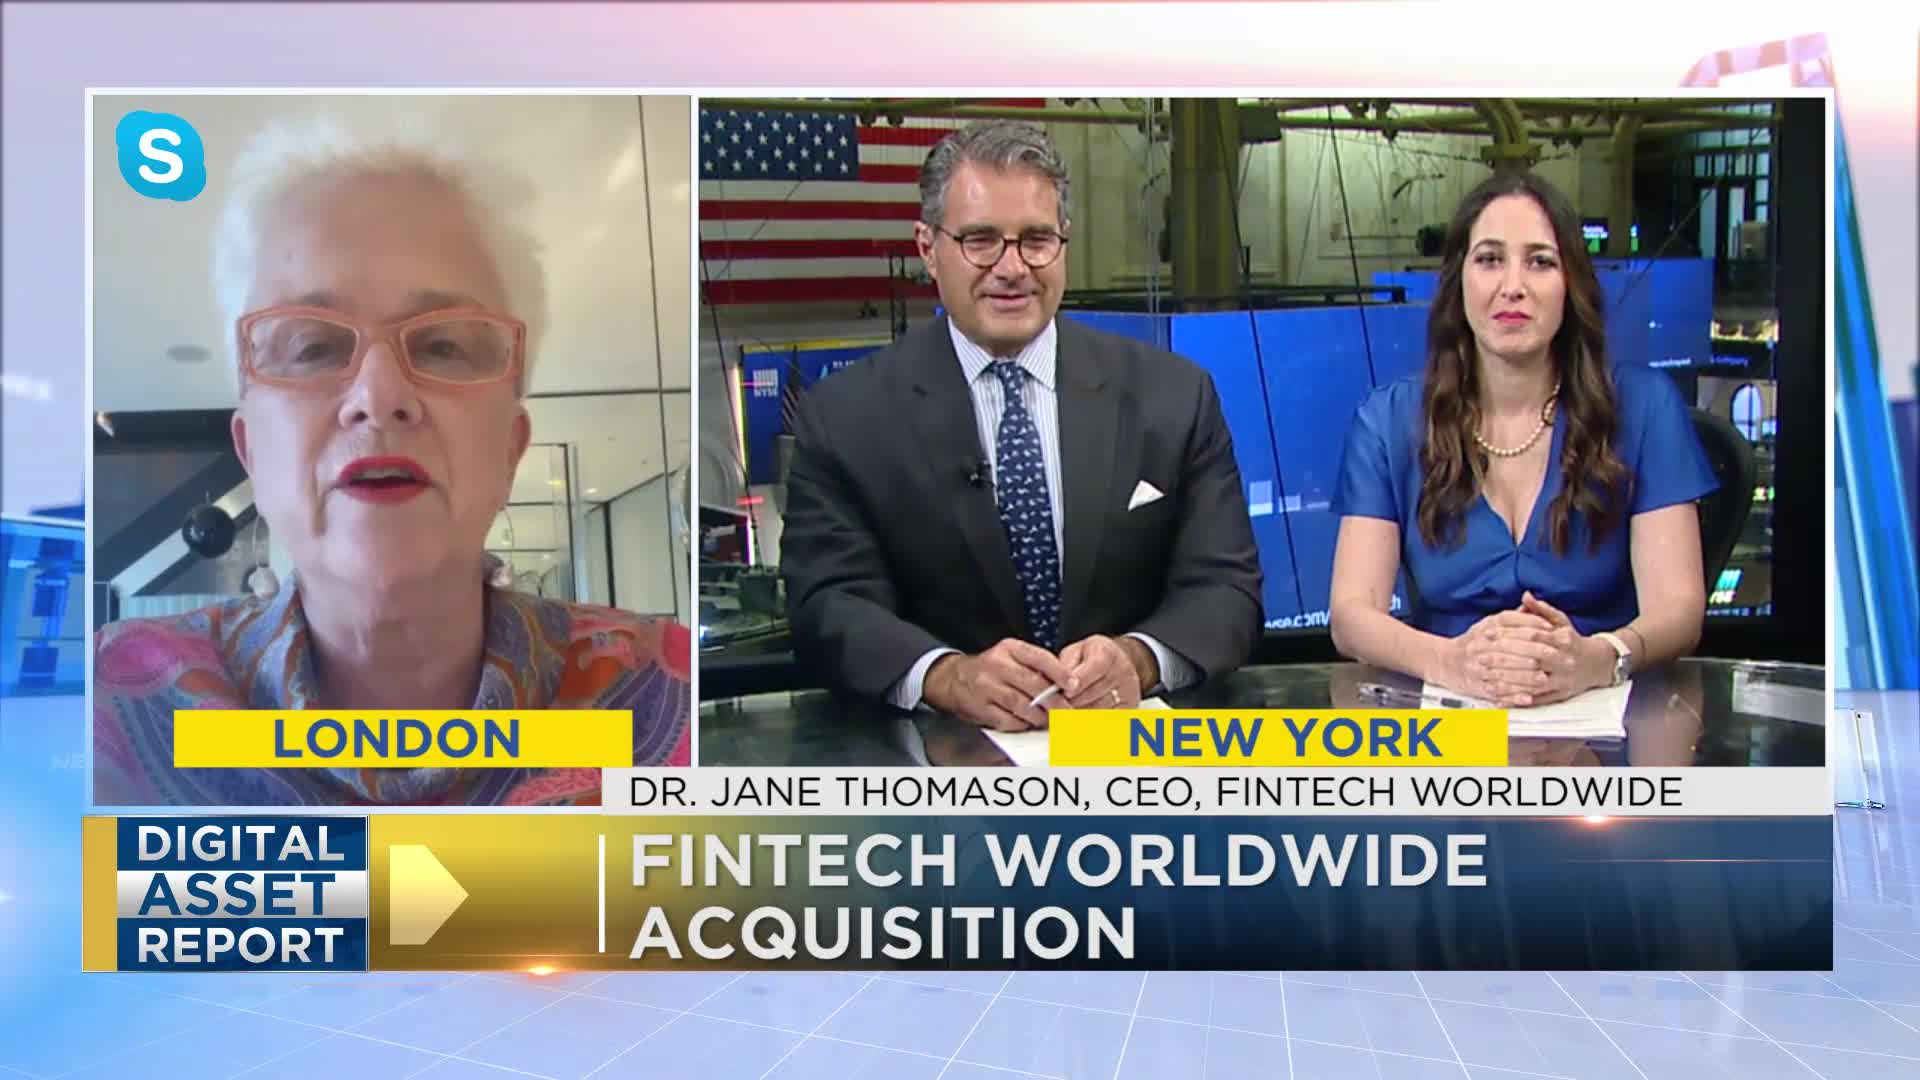 JANE_THOMASON_CEO_Fintech_Worldwide.mp4